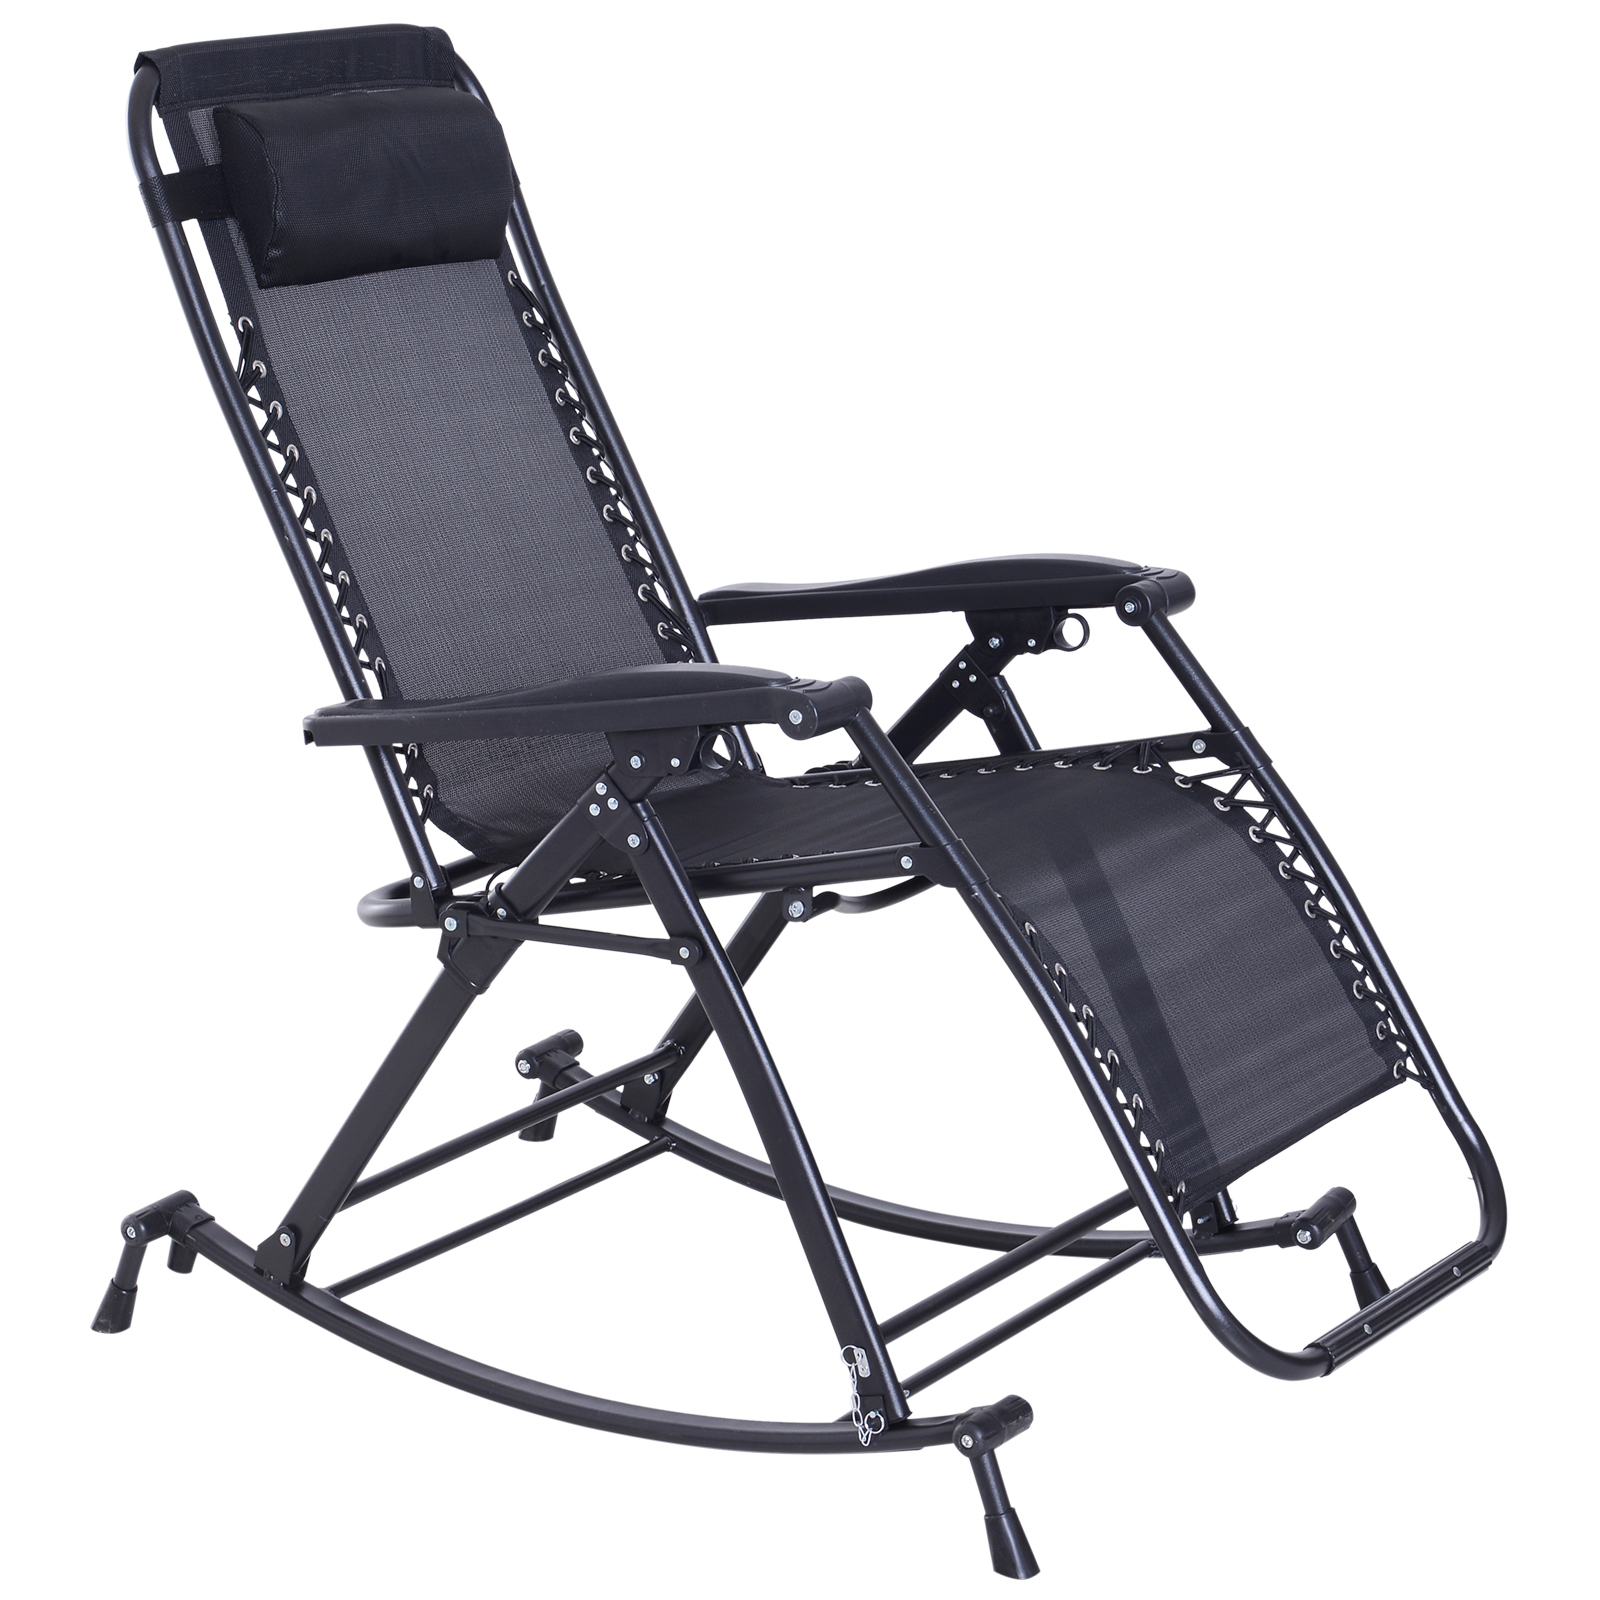 Outdoor Recliner Lounge Zero Gravity Recliner Lounge Chair Patio Rocker Home